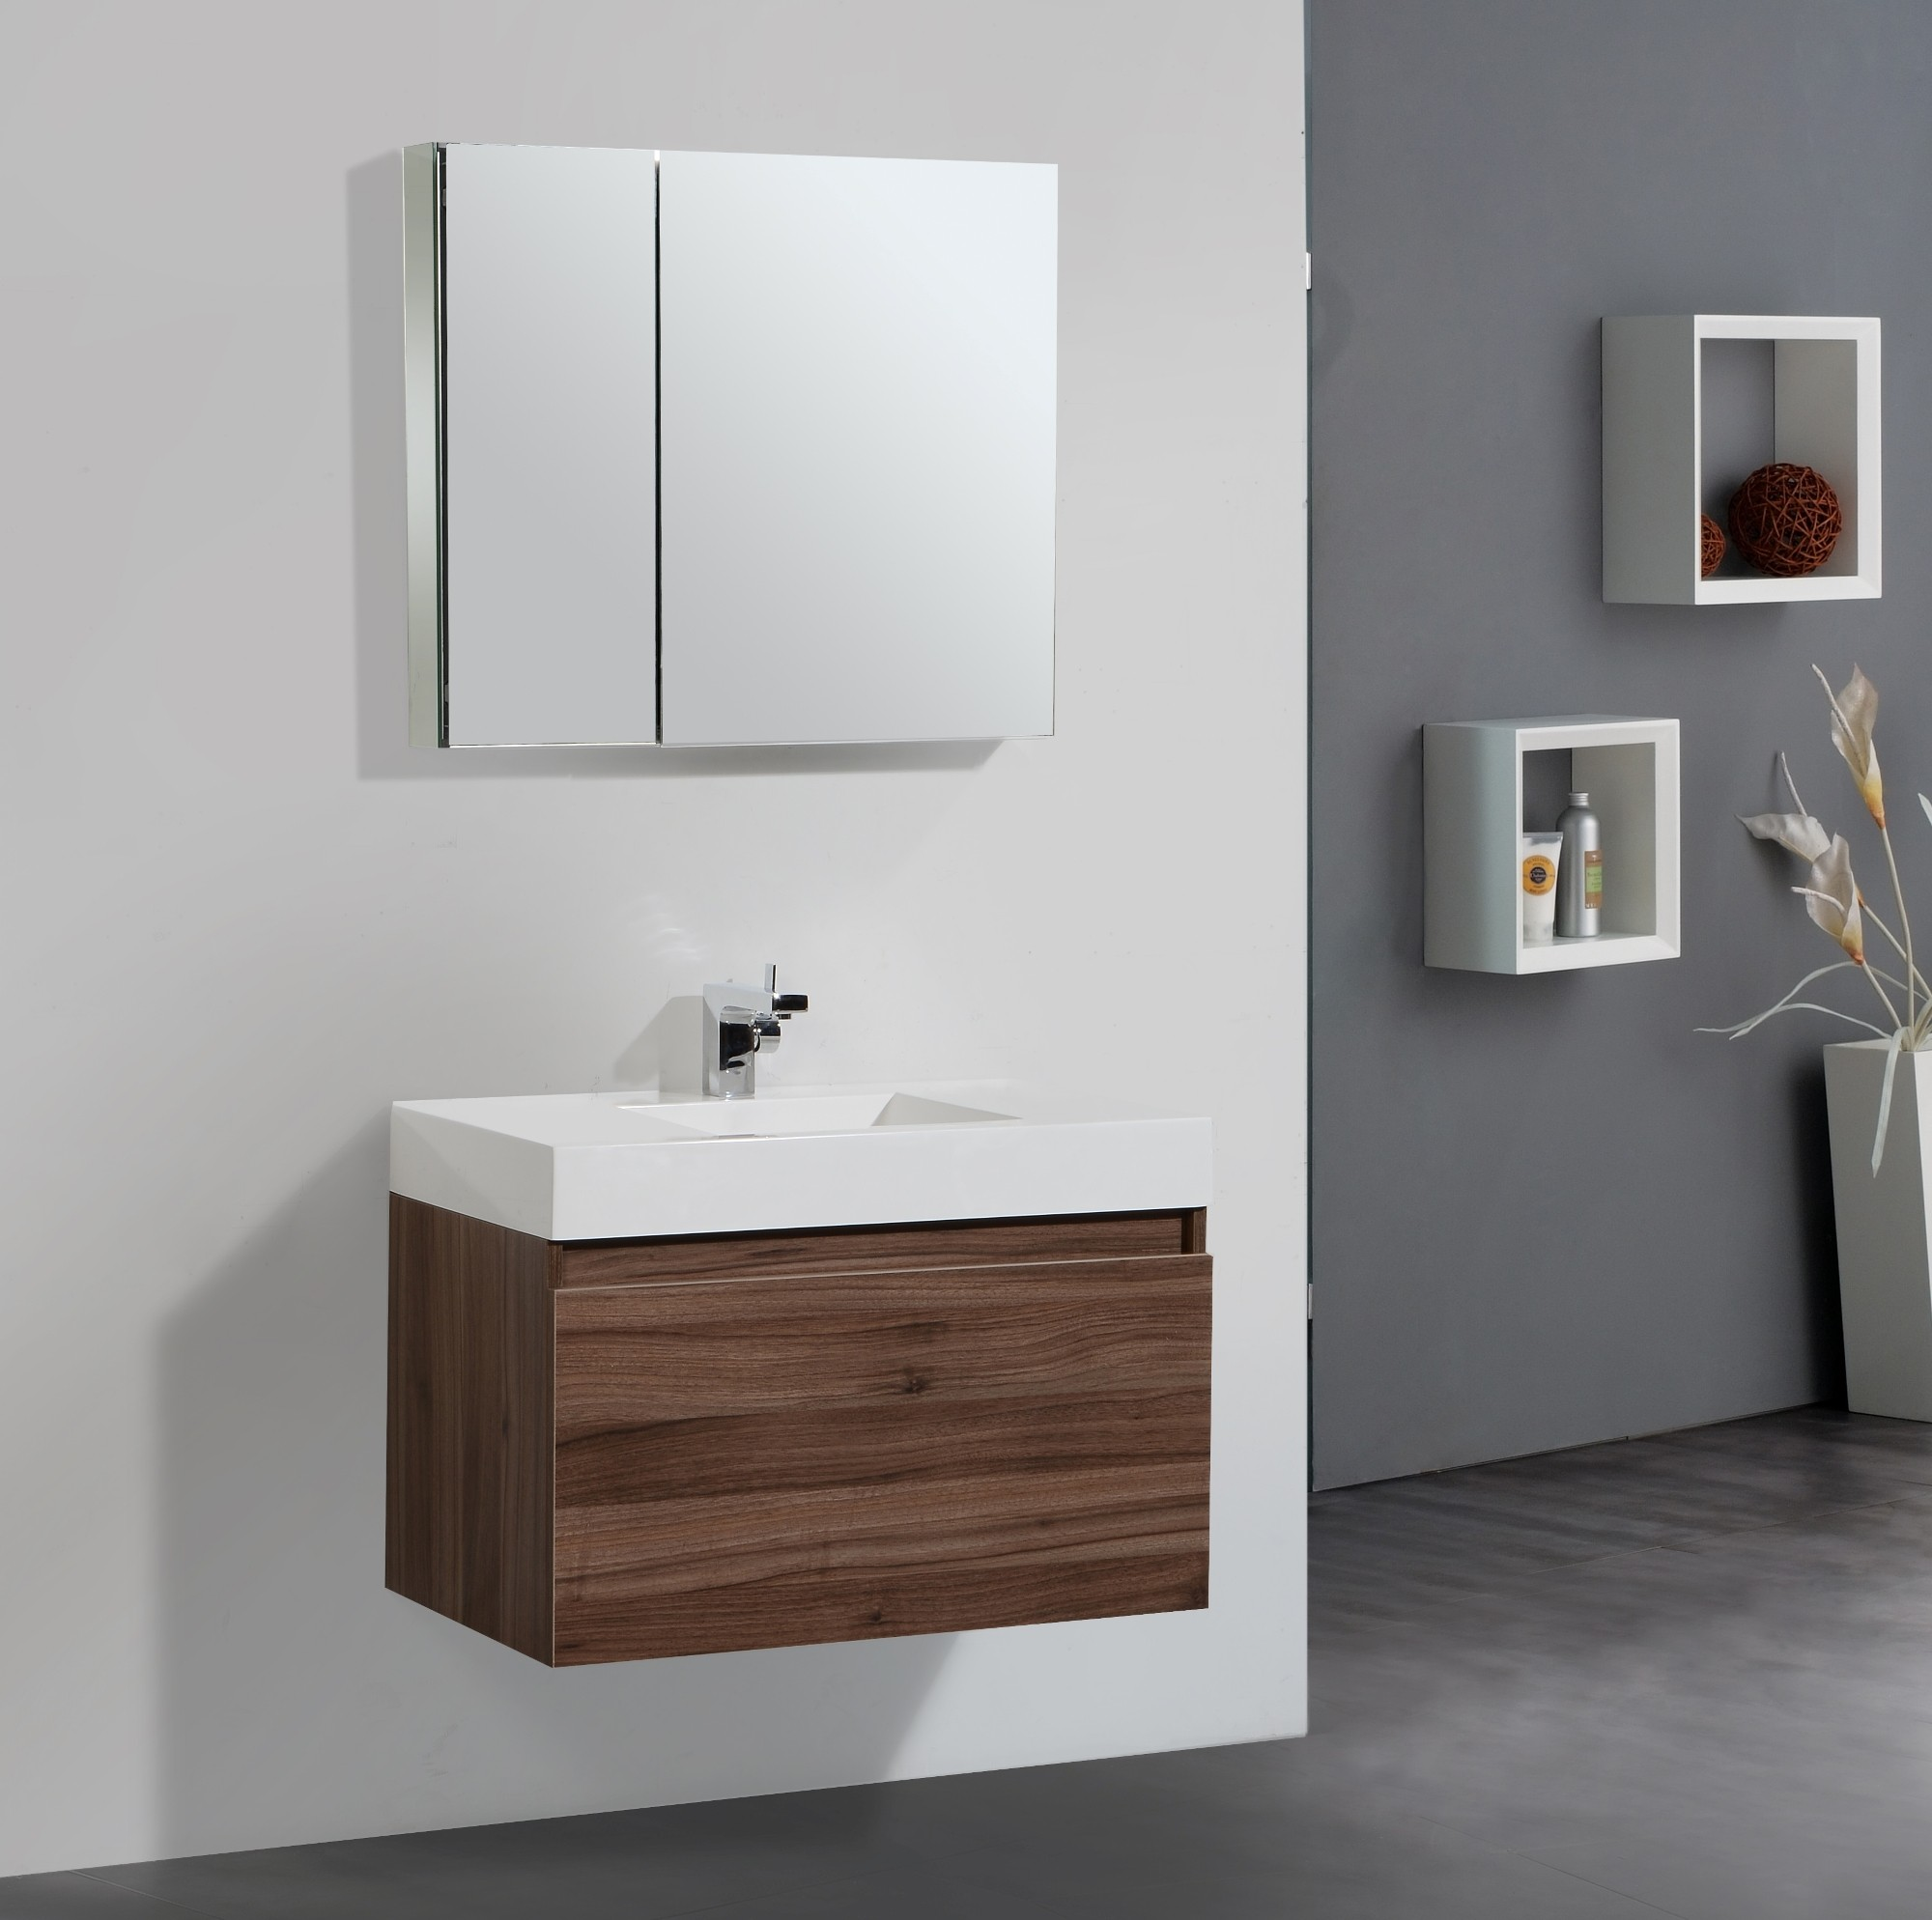 small-bathroom-sink-cabinet-innovative-with-photo-of-small-bathroom-decor-new-on-design